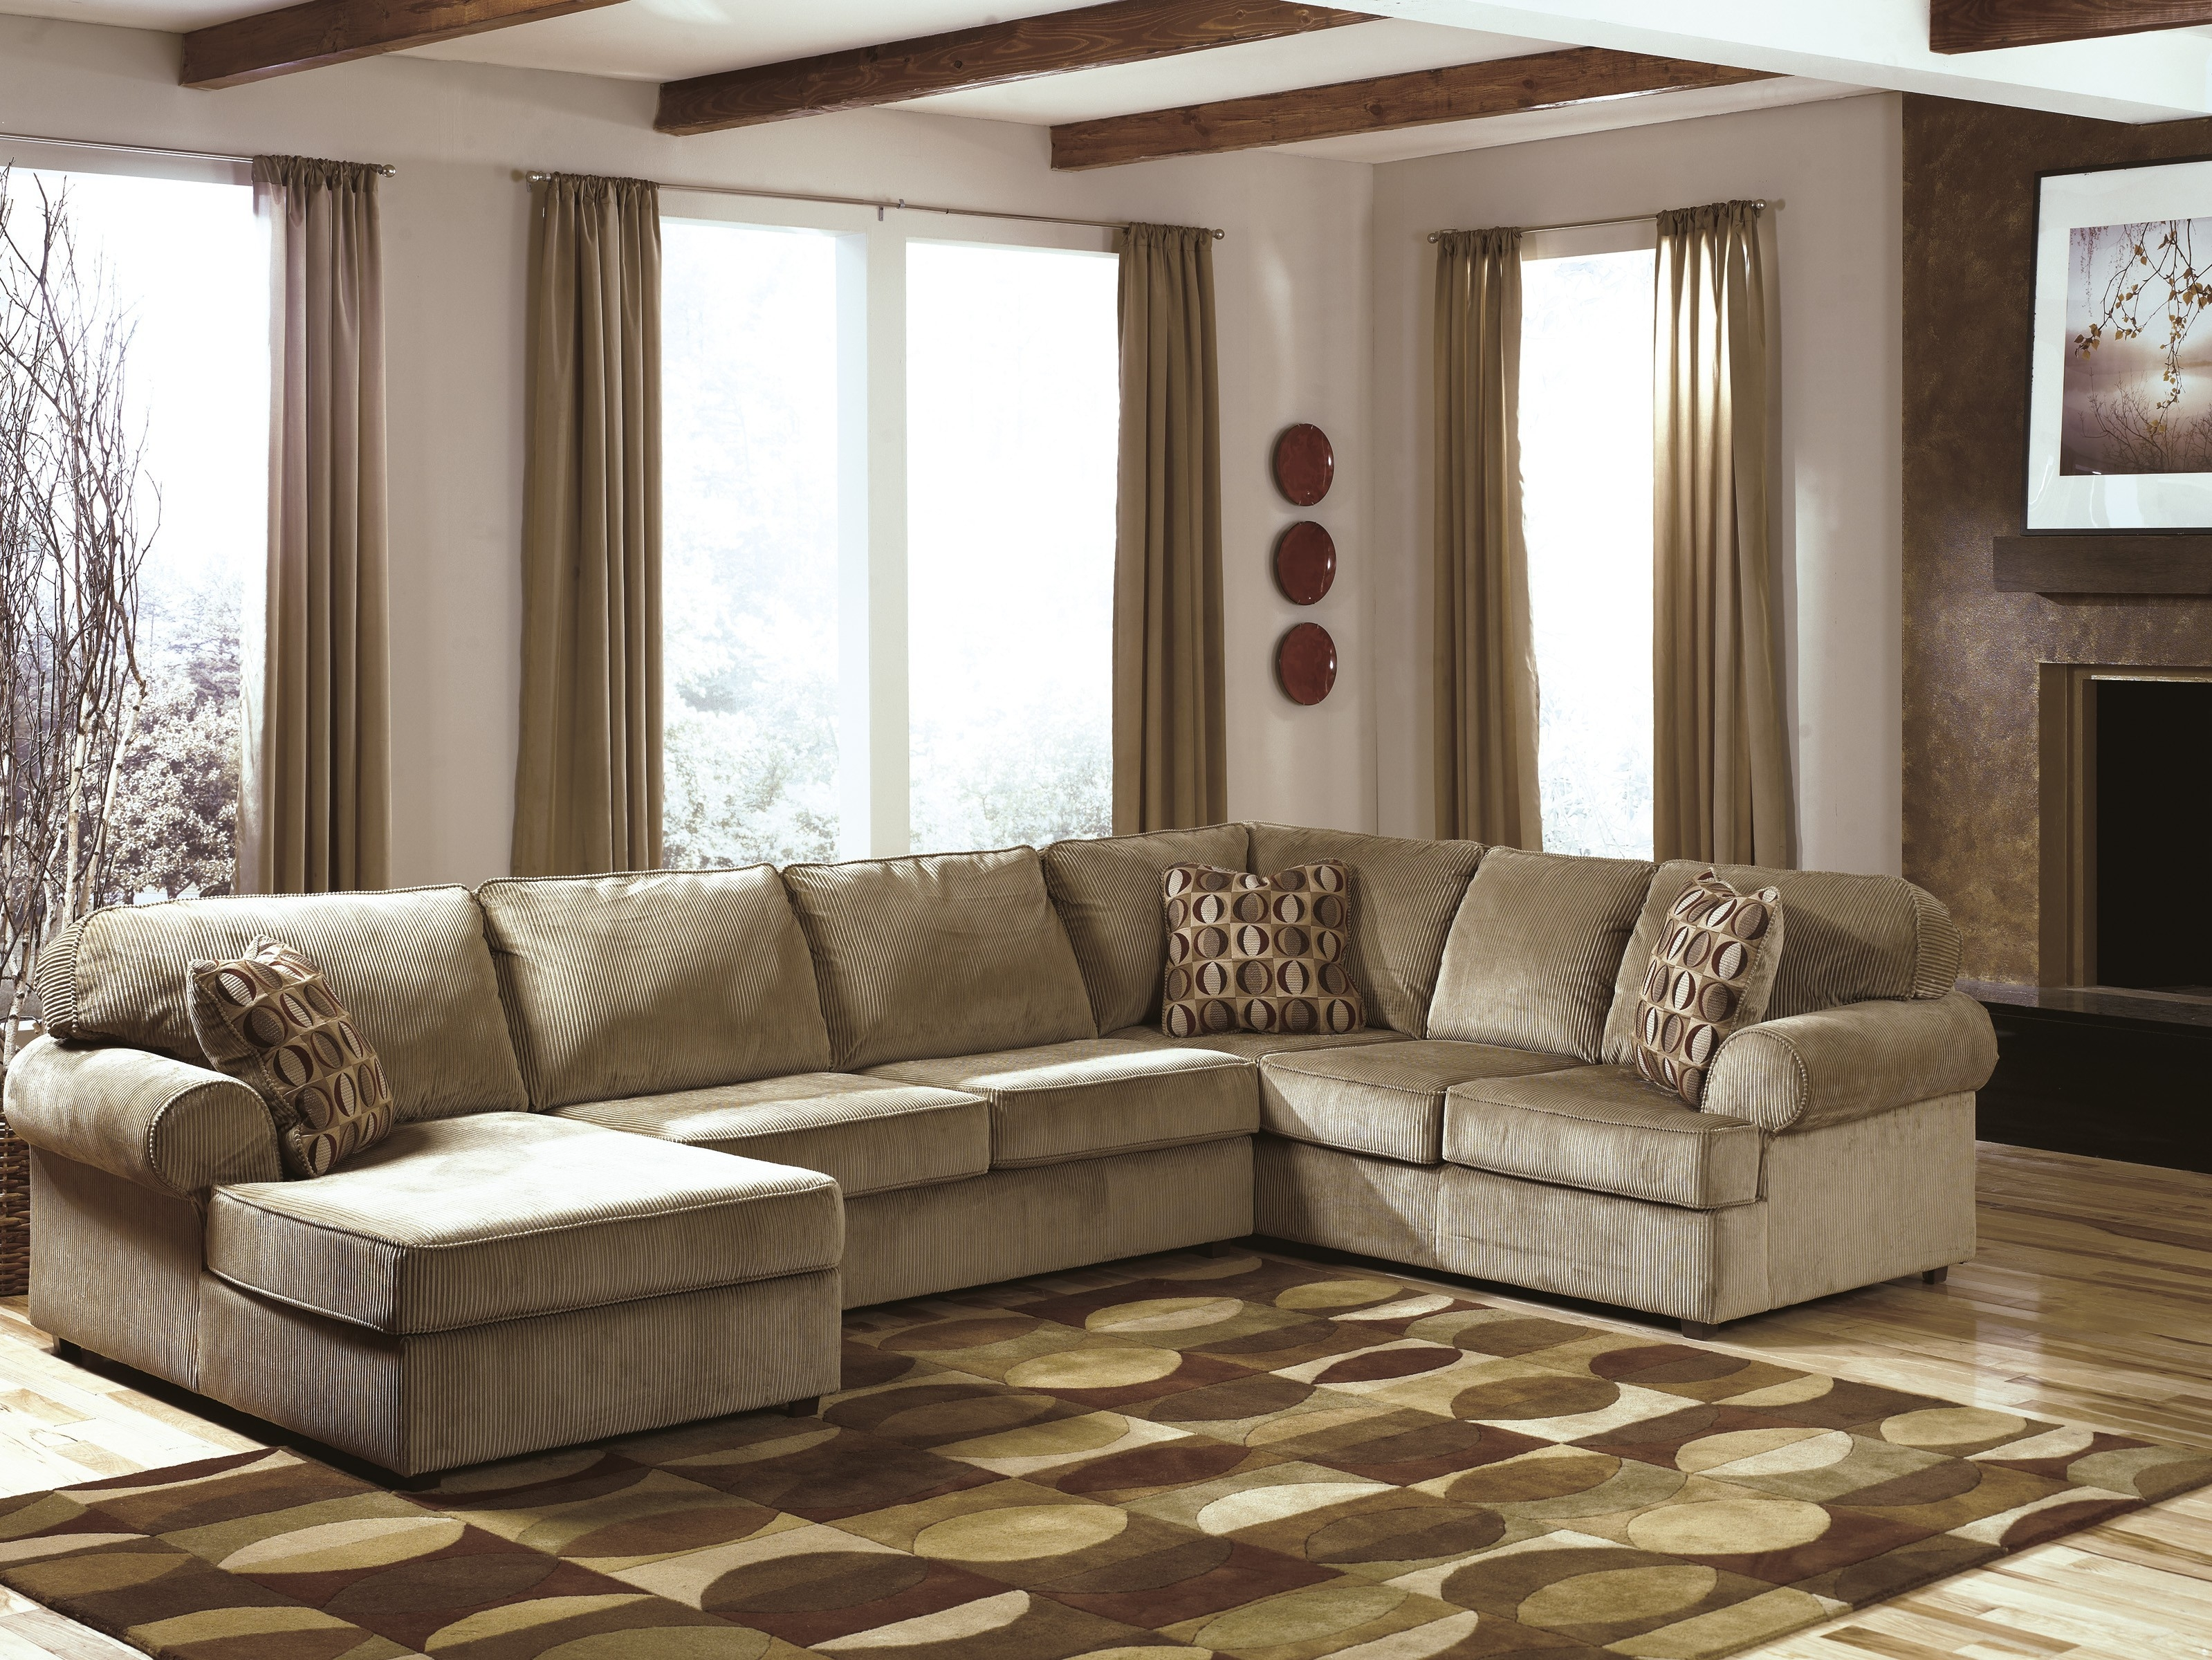 Furniture Mesmerizing Costco Sectionals Sofa For Cozy Living Room Regarding Cozy Sectional Sofas (#10 of 12)